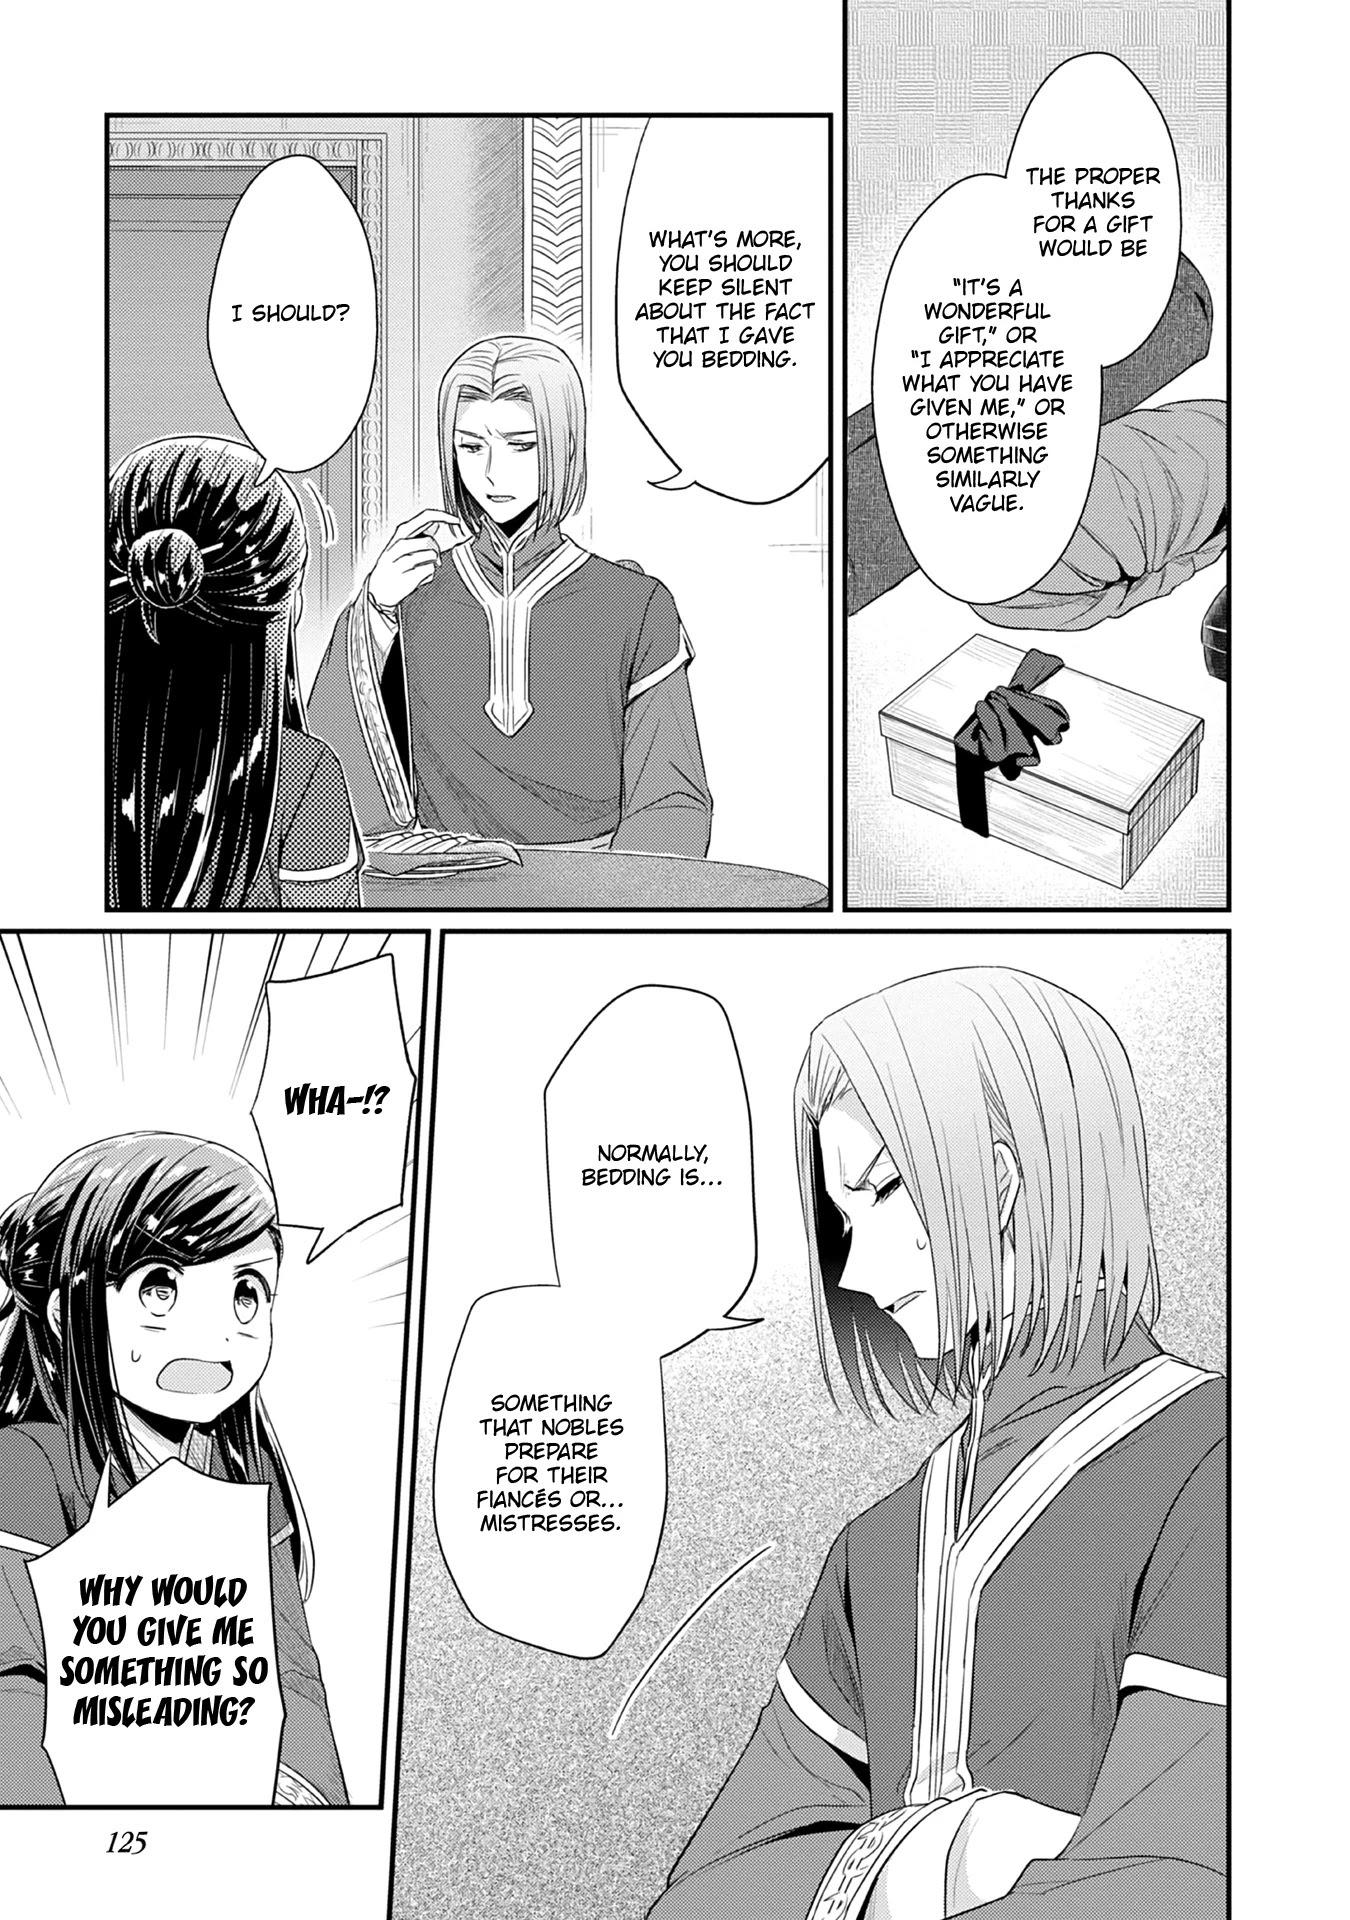 Ascendance Of A Bookworm ~I'll Do Anything To Become A Librarian~ Part 2 「I'll Become A Shrine Maiden For Books!」 Chapter 20: Gifts And The Arts page 10 - Mangakakalots.com